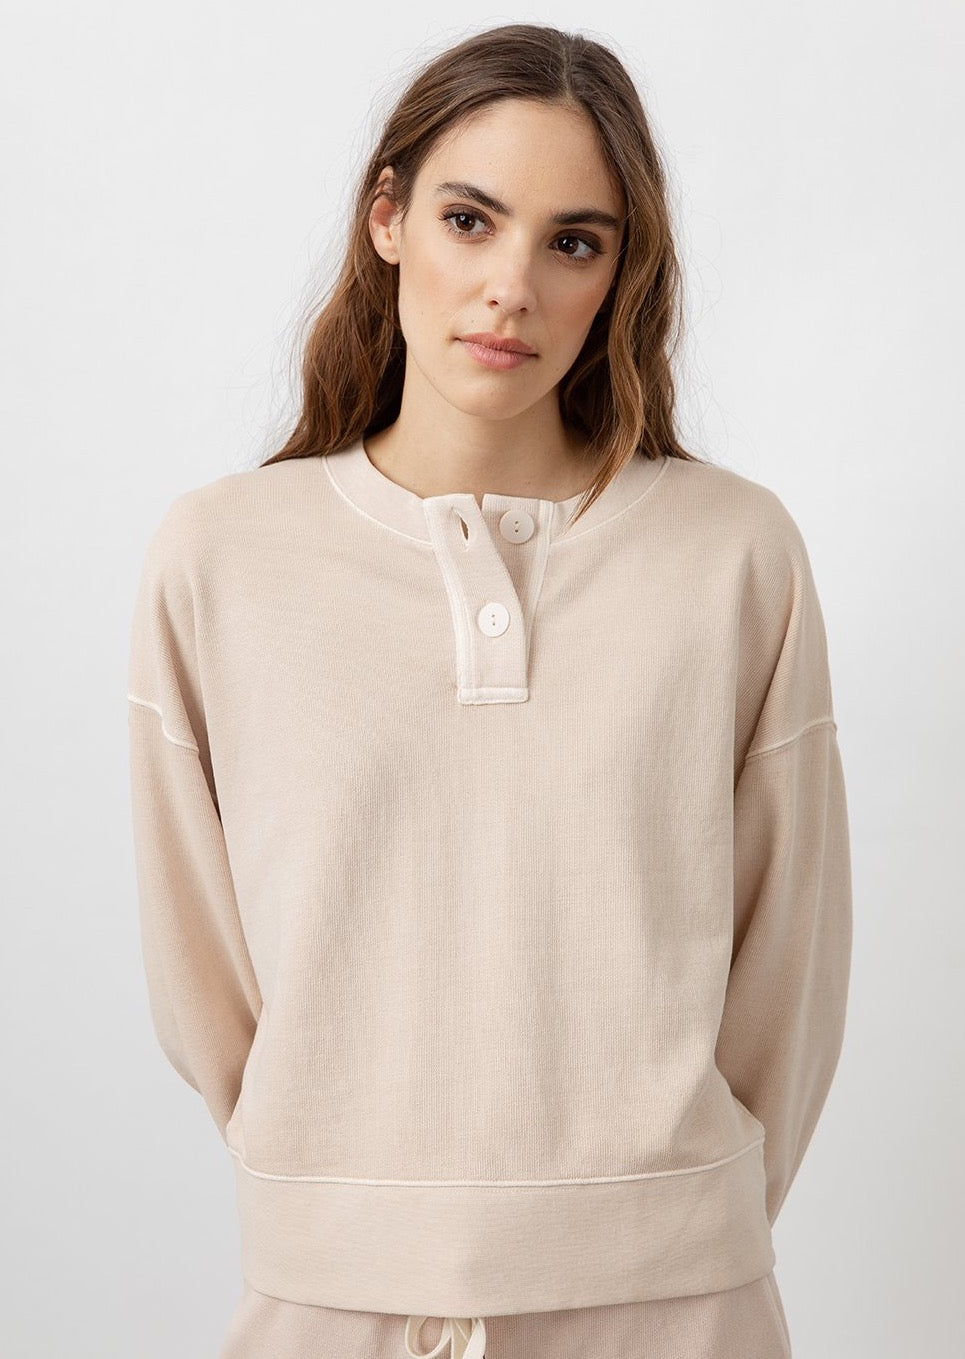 Erin Sweatshirt In Putty